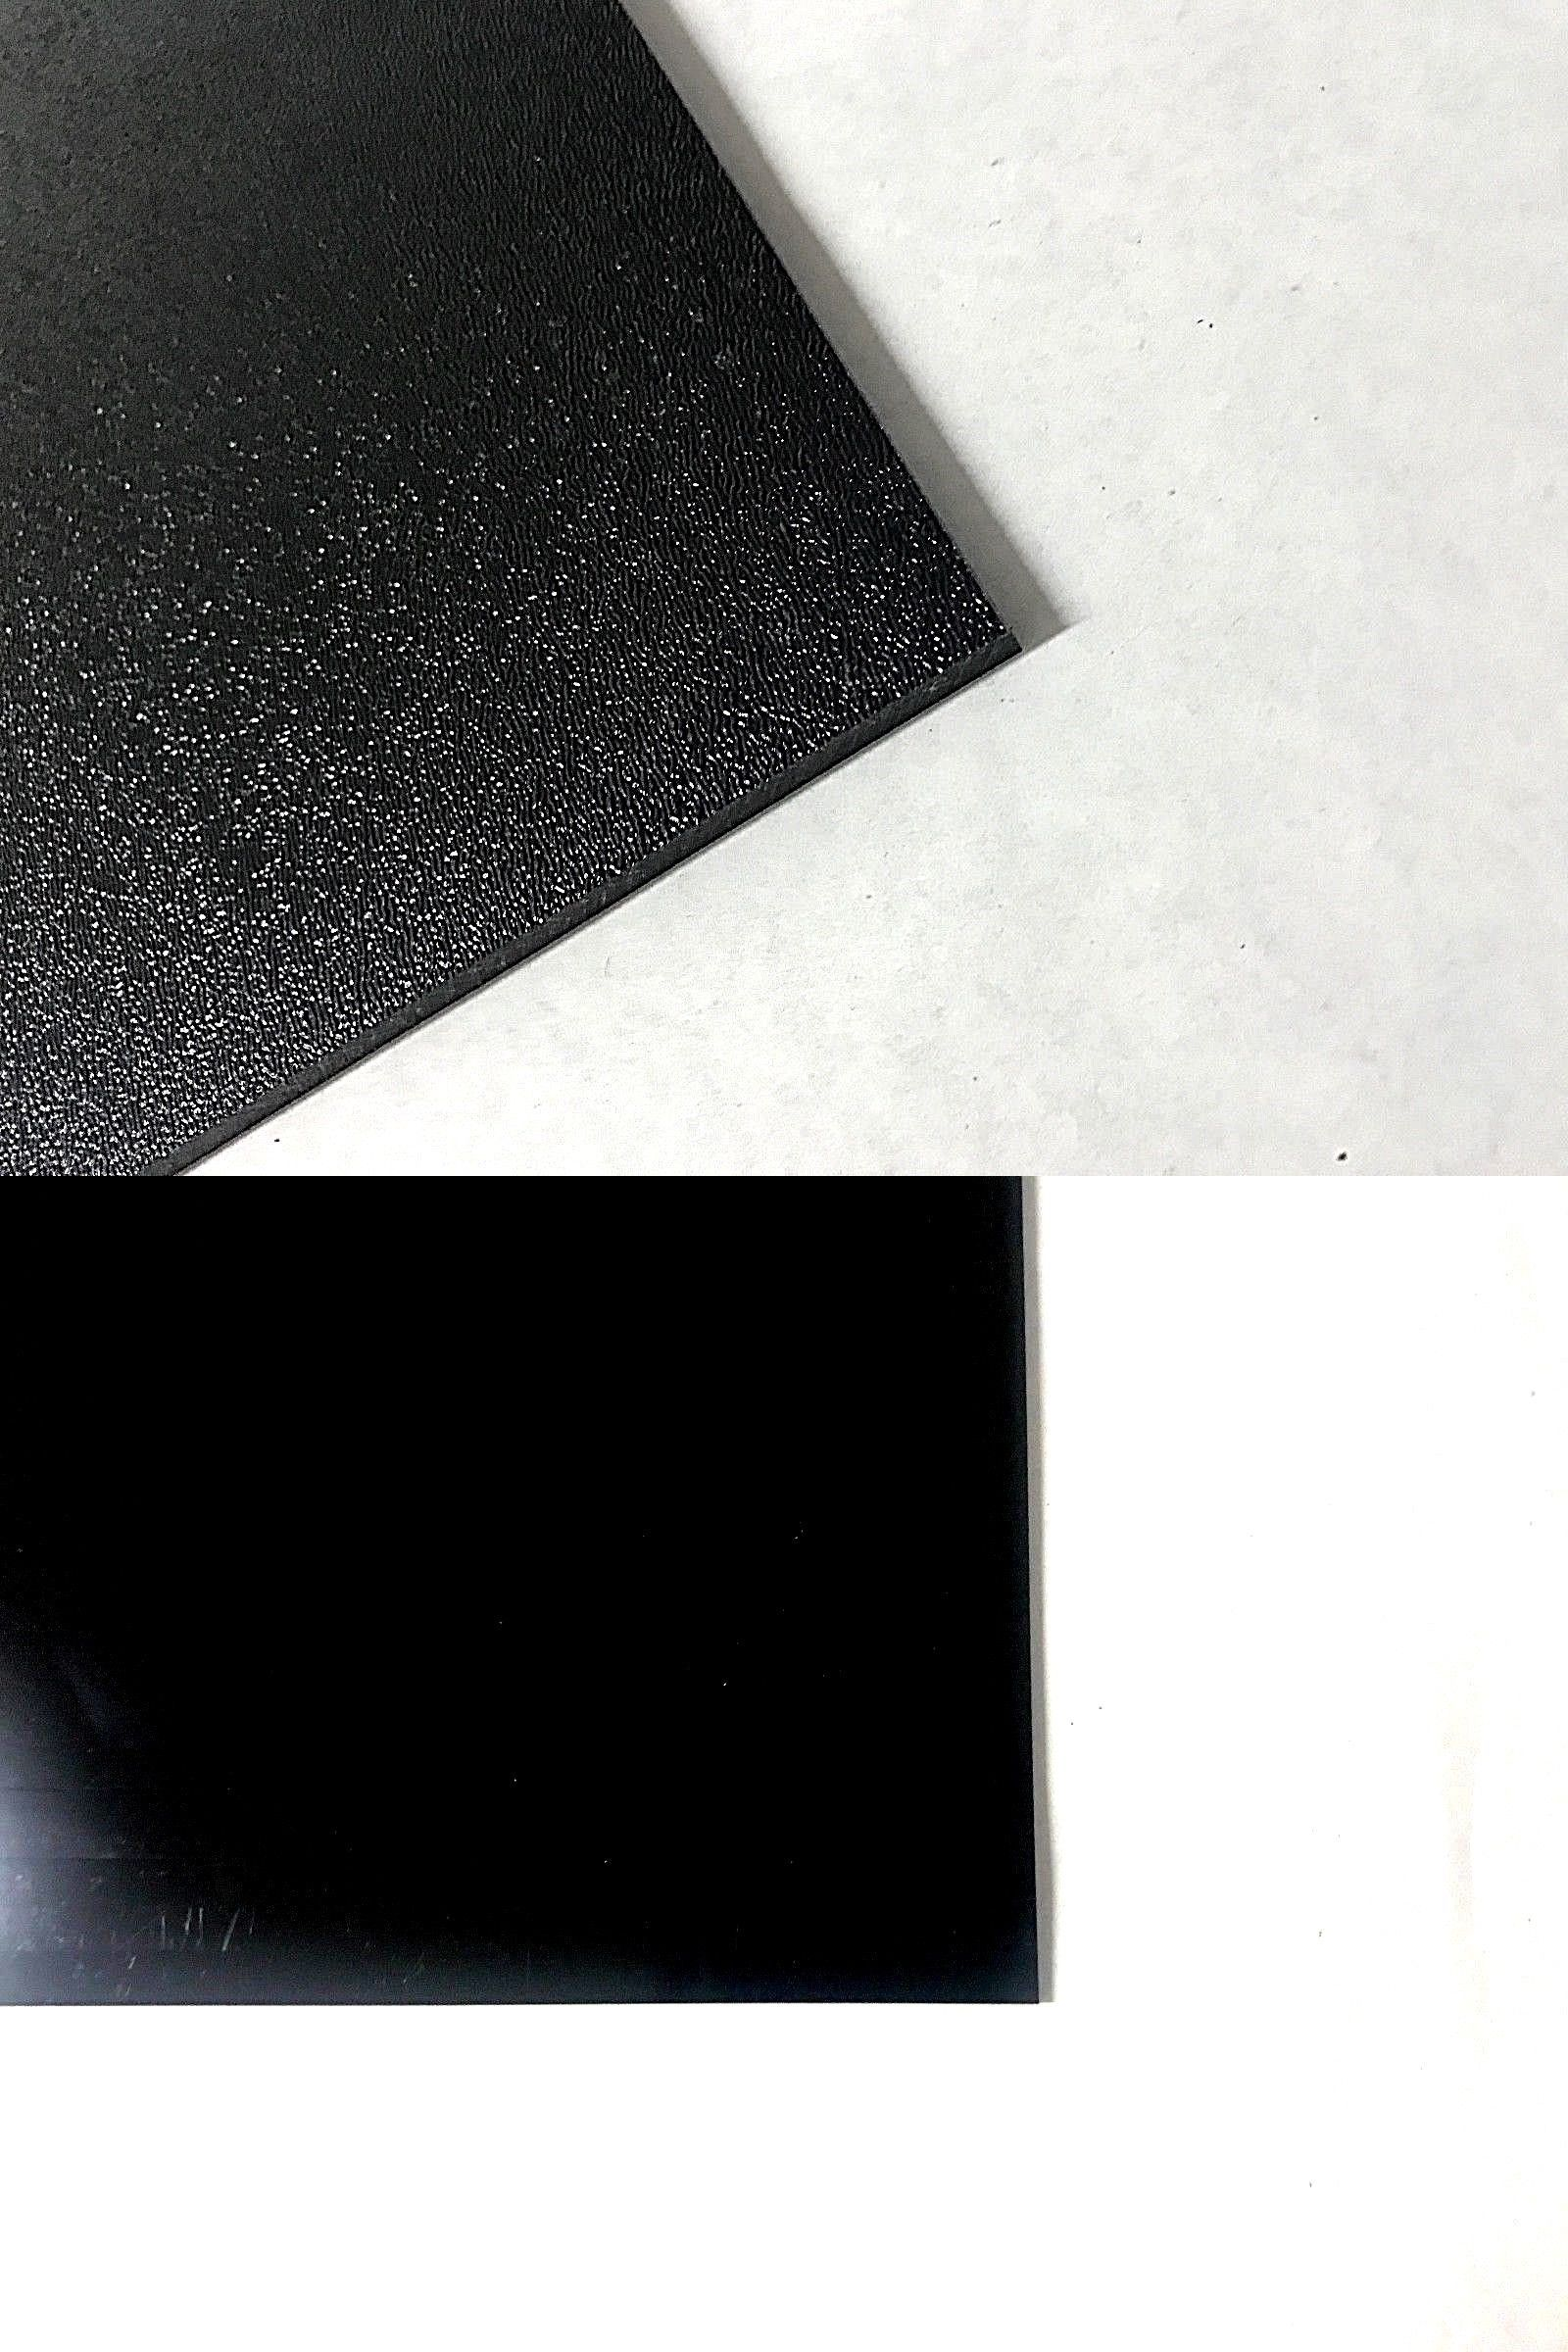 Other Crafts 75576 Abs Black Plastic Sheets You Pick The Size 1 2 4 8 Pack Options 1 Side Textured Buy It Now Only 11 4 On Plastic Sheets Texture Crafts